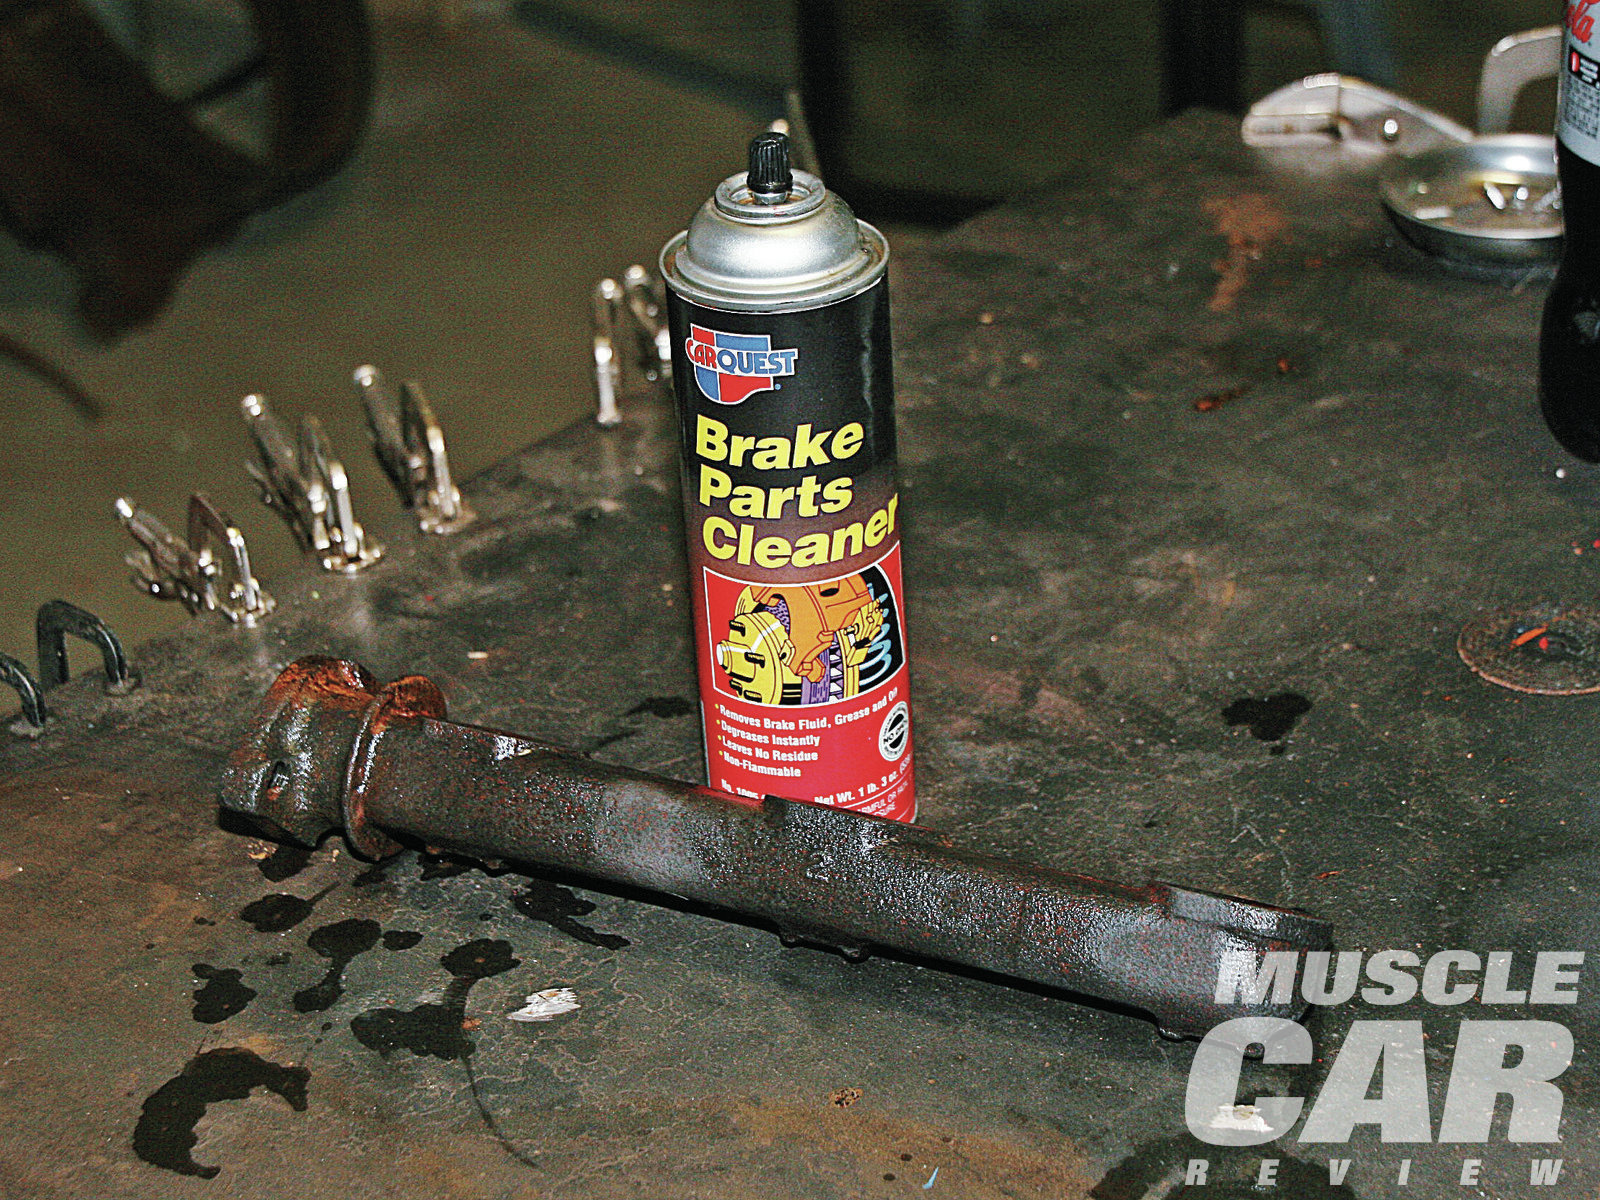 Any time you derust cast steel or bare metal and then rinse it, it flash-rusts, even if you get the water off quickly with an air gun. We figured that if we could displace the water and separate it from the steel's surface we would eliminate that chemical reaction. While the part is still wet with water, we spray it with brake cleaner. The brake cleaner displaces the water, getting between it and the surface of the metal. Once the part is saturated with brake cleaner, we let the brake cleaner evaporate, leaving rust-free, bare steel.